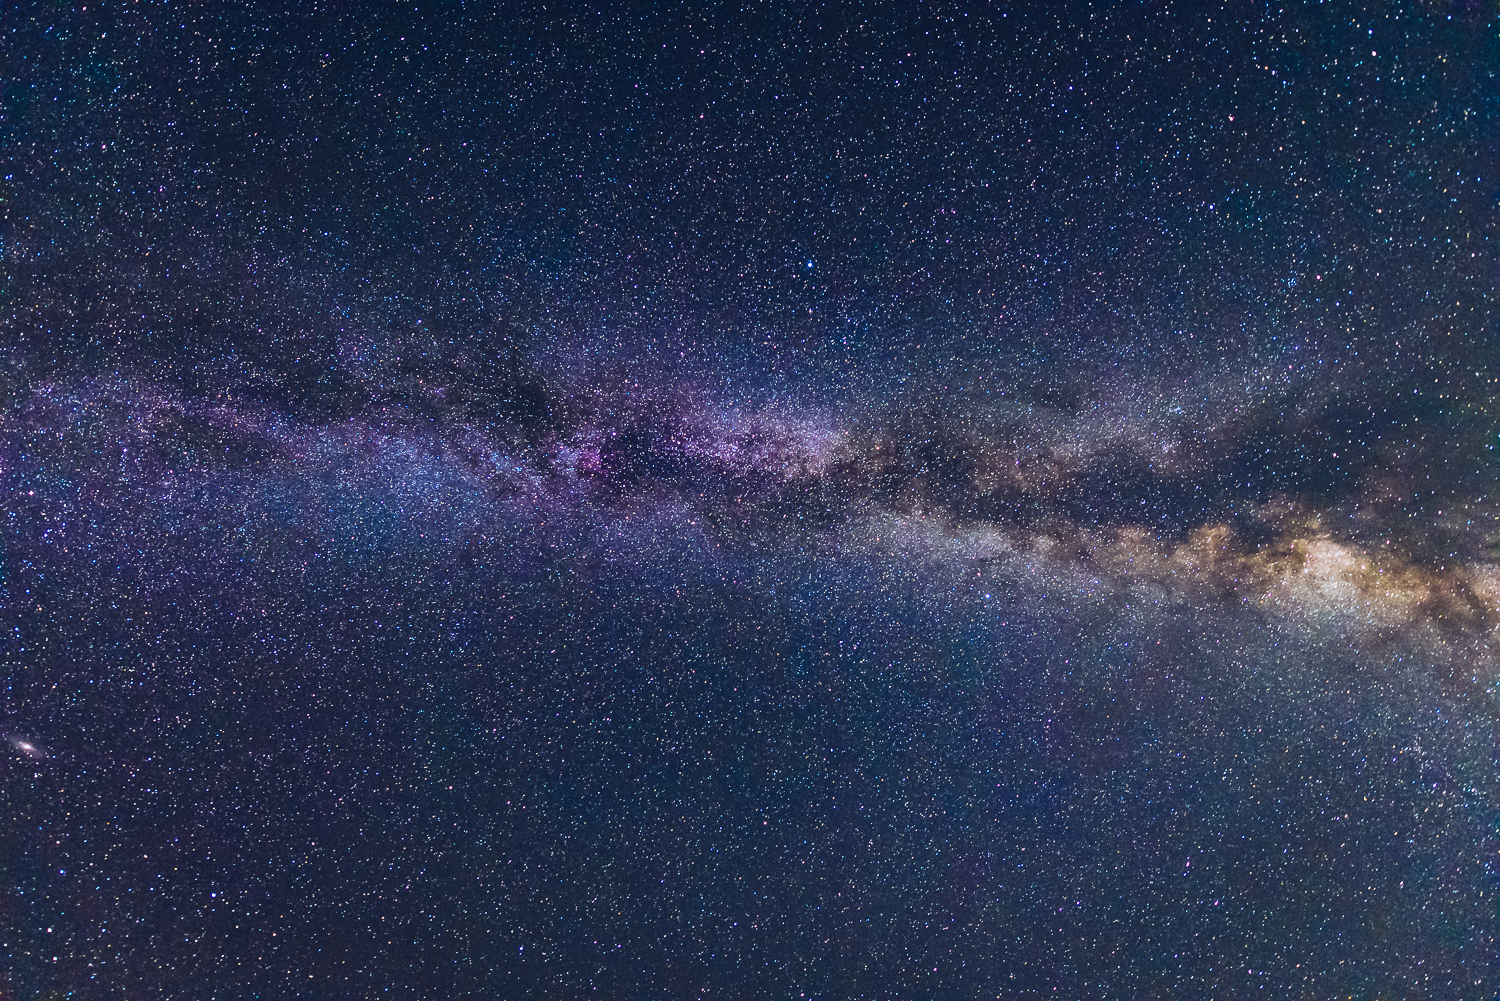 Milky Way Arching directly overhead